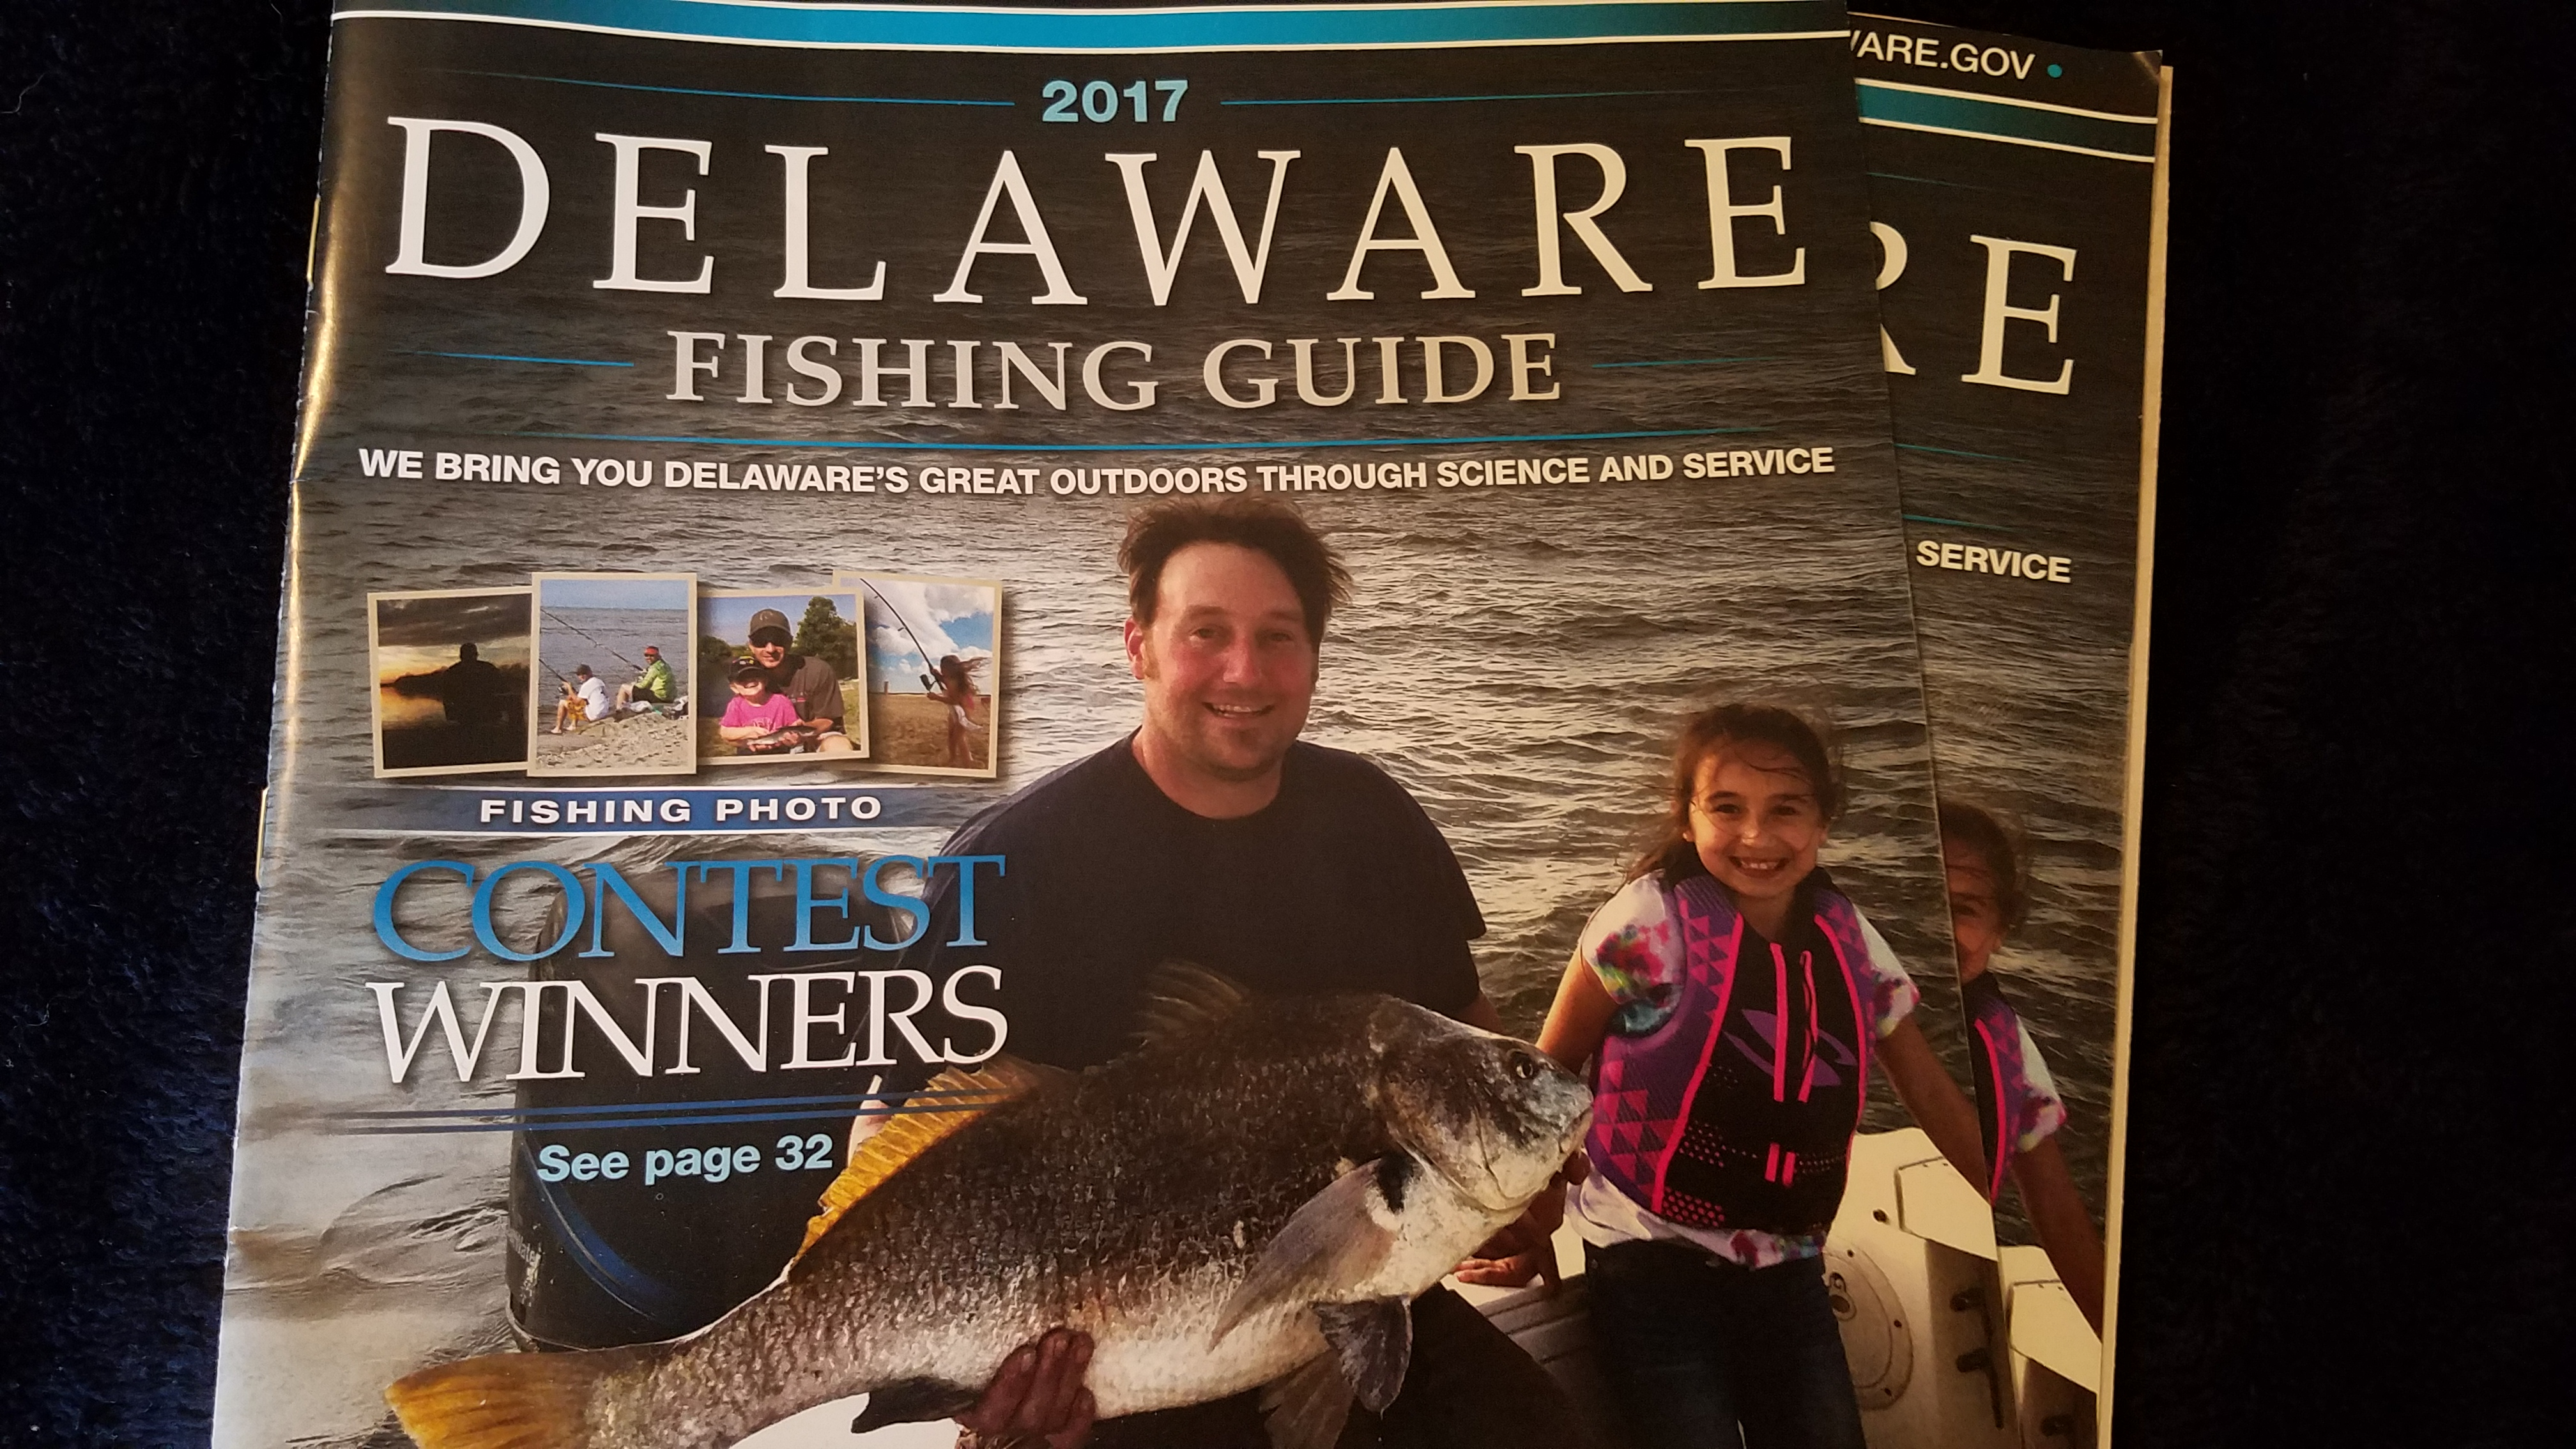 2017 Delaware Fishing Guide, sussex county, kent county, new castle county, creel lmits for delaware, sportfishing tournament